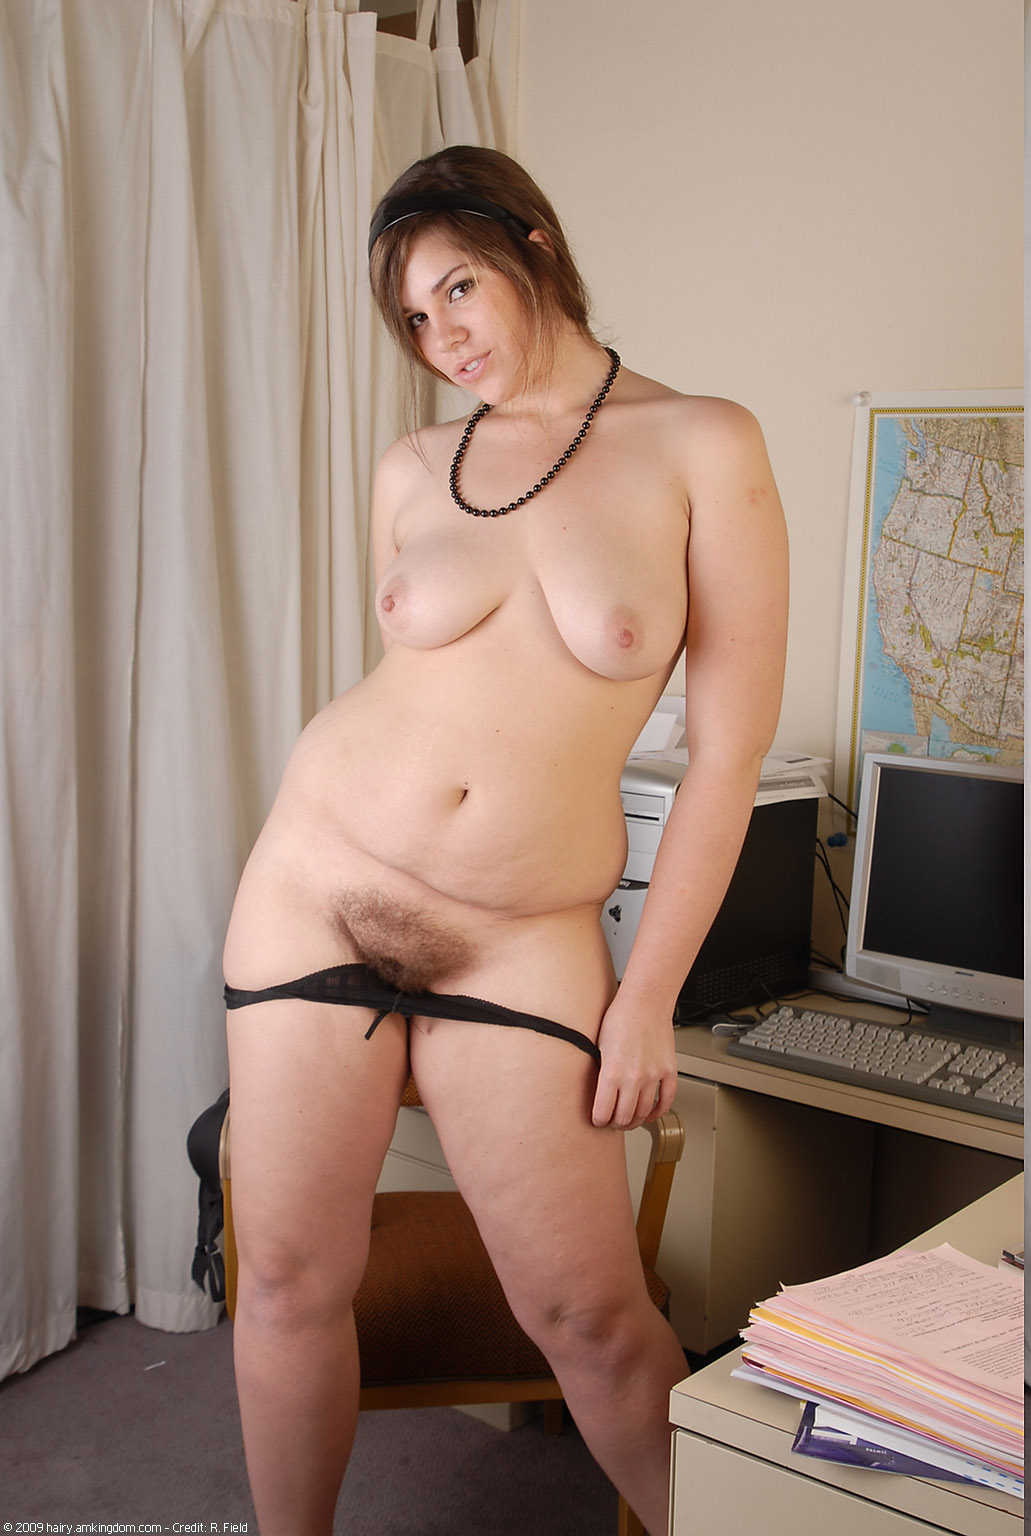 Amateur Chubby Mexican Teen